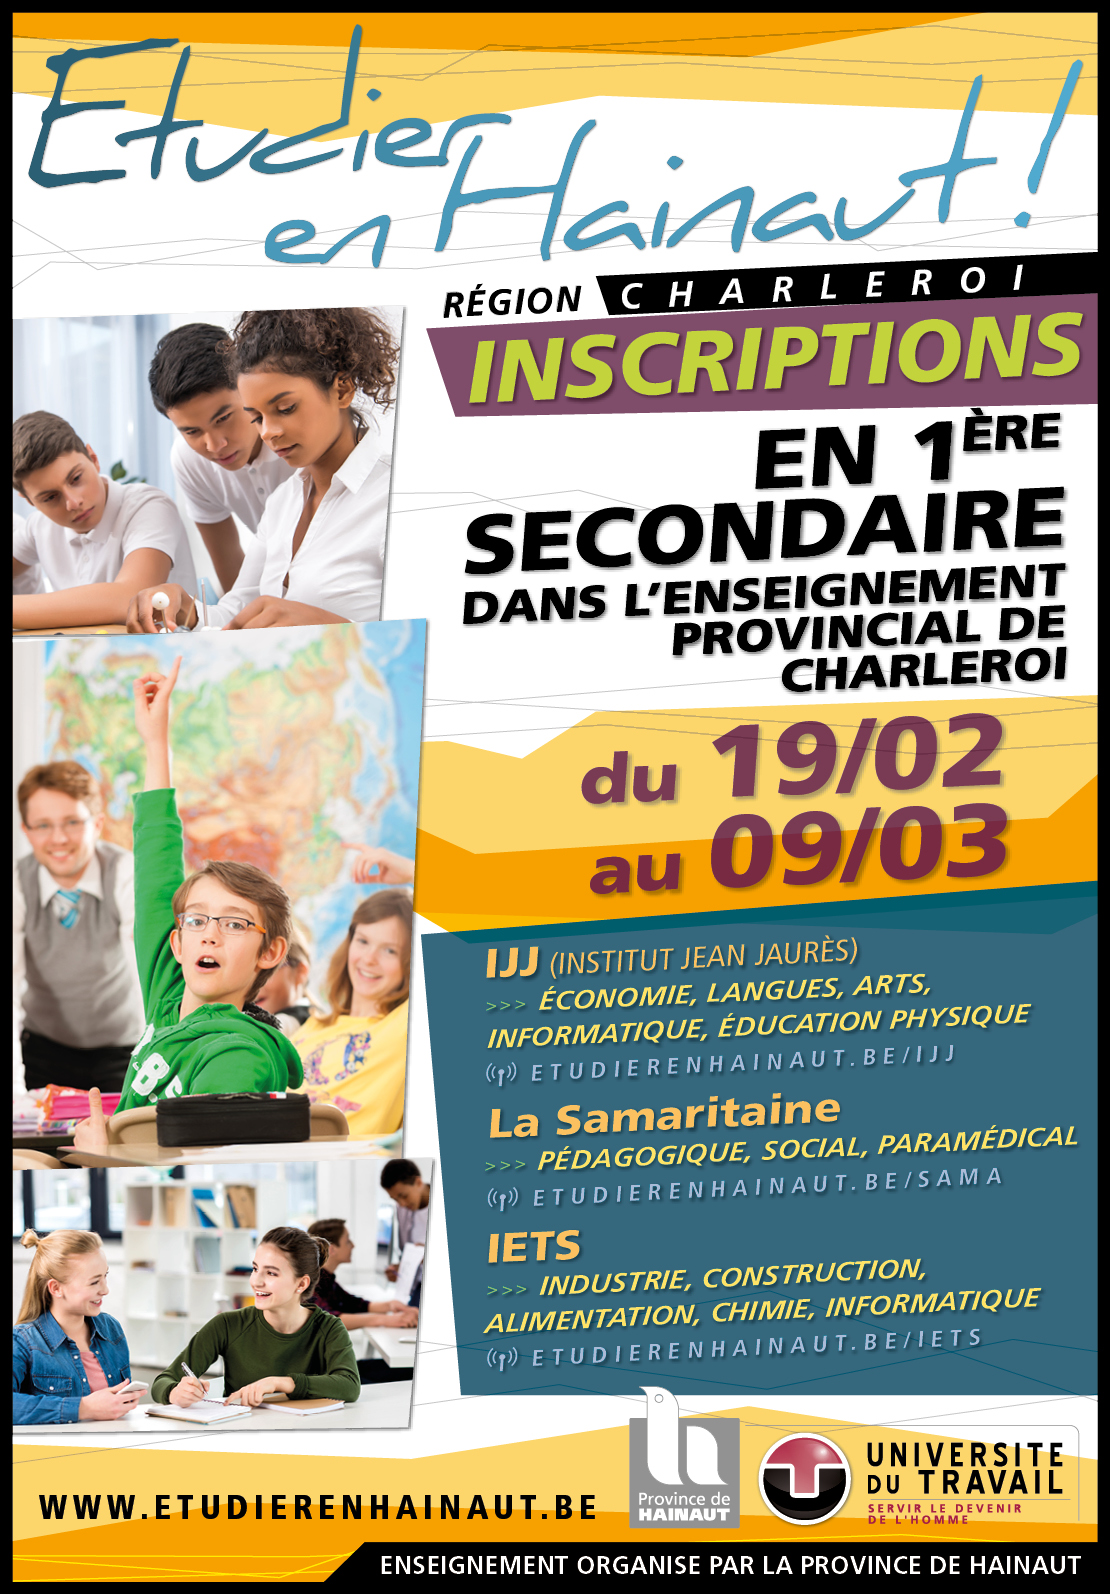 Inscriptions en 1ère secondaire